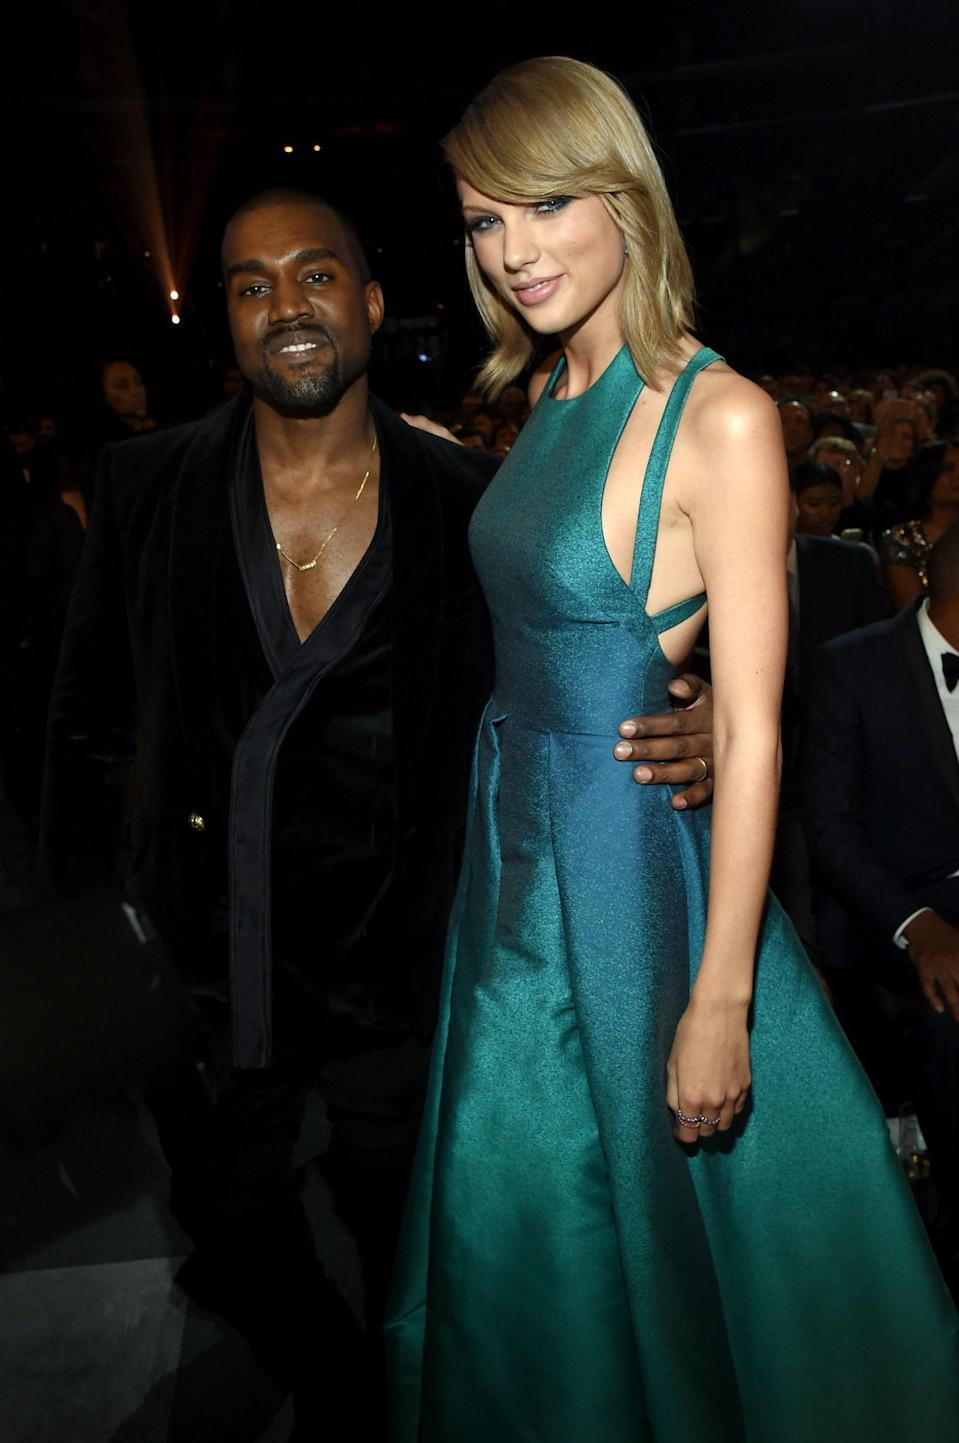 "Though the truce didn't last long, Taylor Swift and Kanye West turned heads when they <a href=""https://www.glamour.com/story/inspiring-photos-that-prove-ev?mbid=synd_yahoo_rss"" rel=""nofollow noopener"" target=""_blank"" data-ylk=""slk:hugged it out"" class=""link rapid-noclick-resp"">hugged it out</a> at the 2015 Grammy Awards—about eight years after <a href=""https://www.glamour.com/story/kanye-west-says-god-wanted-him-to-interrupt-taylor-swift-at-the-2009-vmas?mbid=synd_yahoo_rss"" rel=""nofollow noopener"" target=""_blank"" data-ylk=""slk:that VMAs moment"" class=""link rapid-noclick-resp""><em>that</em> VMAs moment</a>. It was nice while it lasted!"